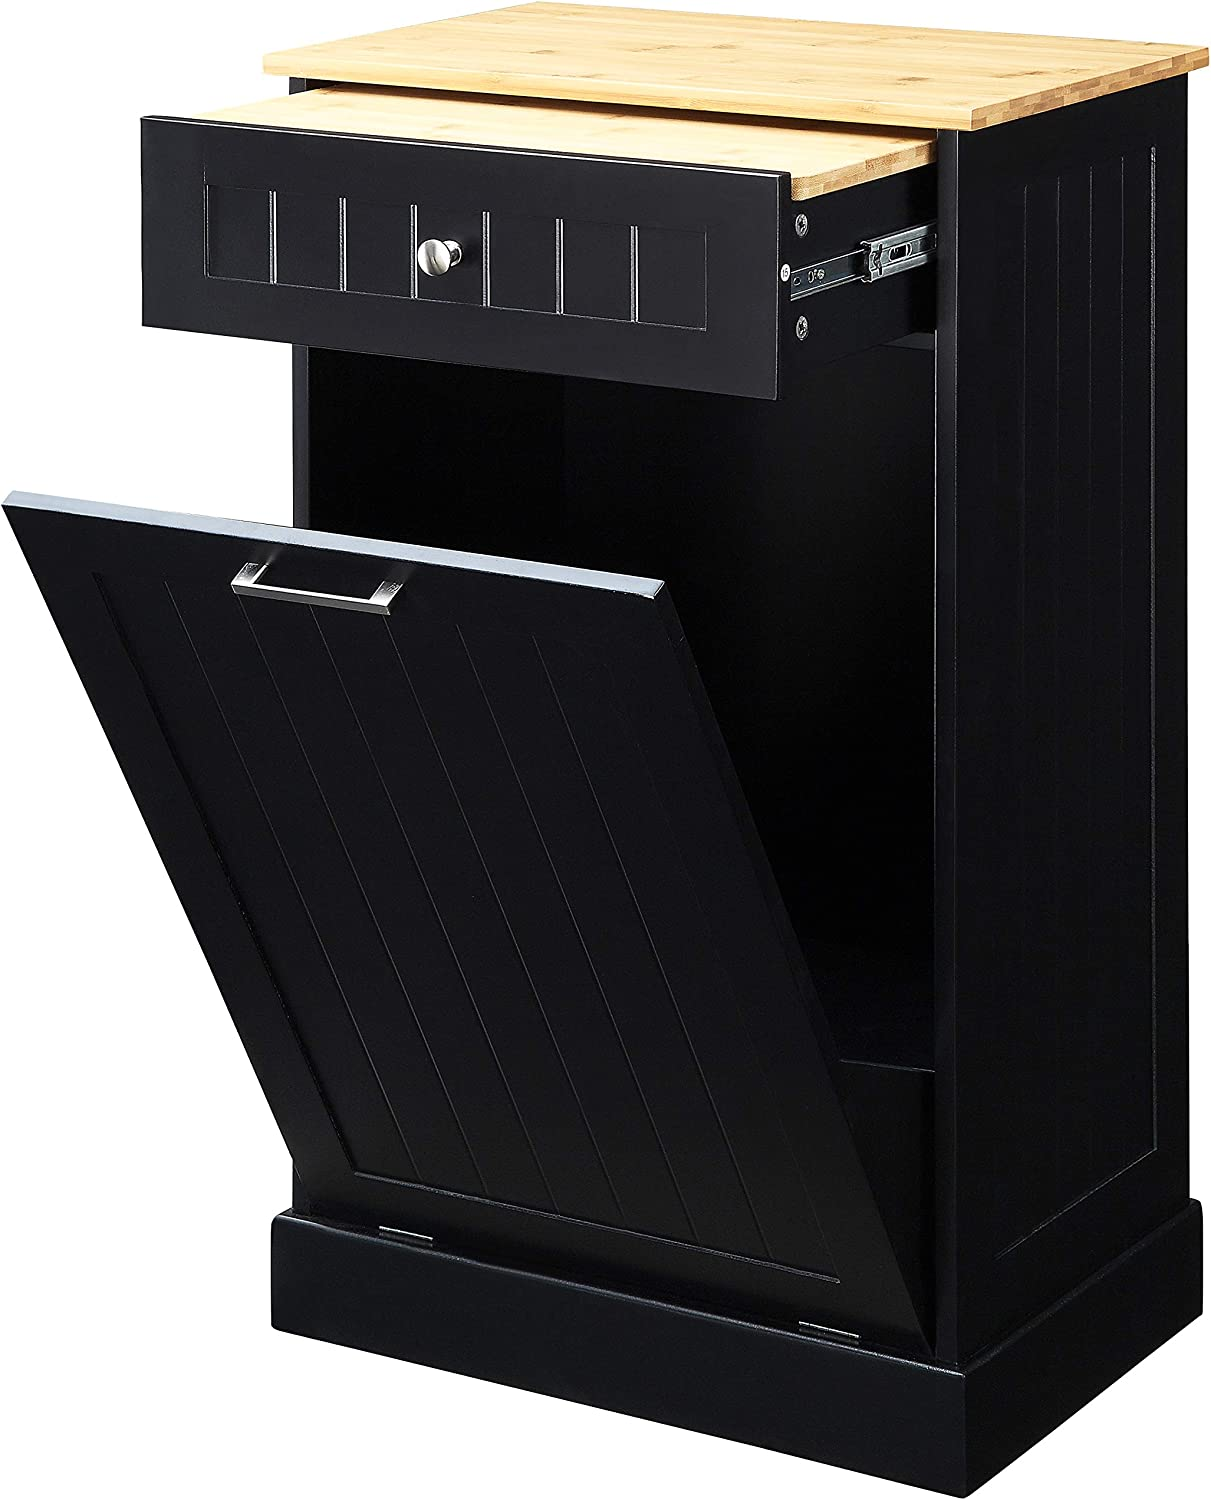 Amazon Com Northwood Calliger Tilt Out Free Standing Kitchen Trash Or Recycling Cabinet With Drawer Removable Bamboo Cutting Board Black Kitchen Dining